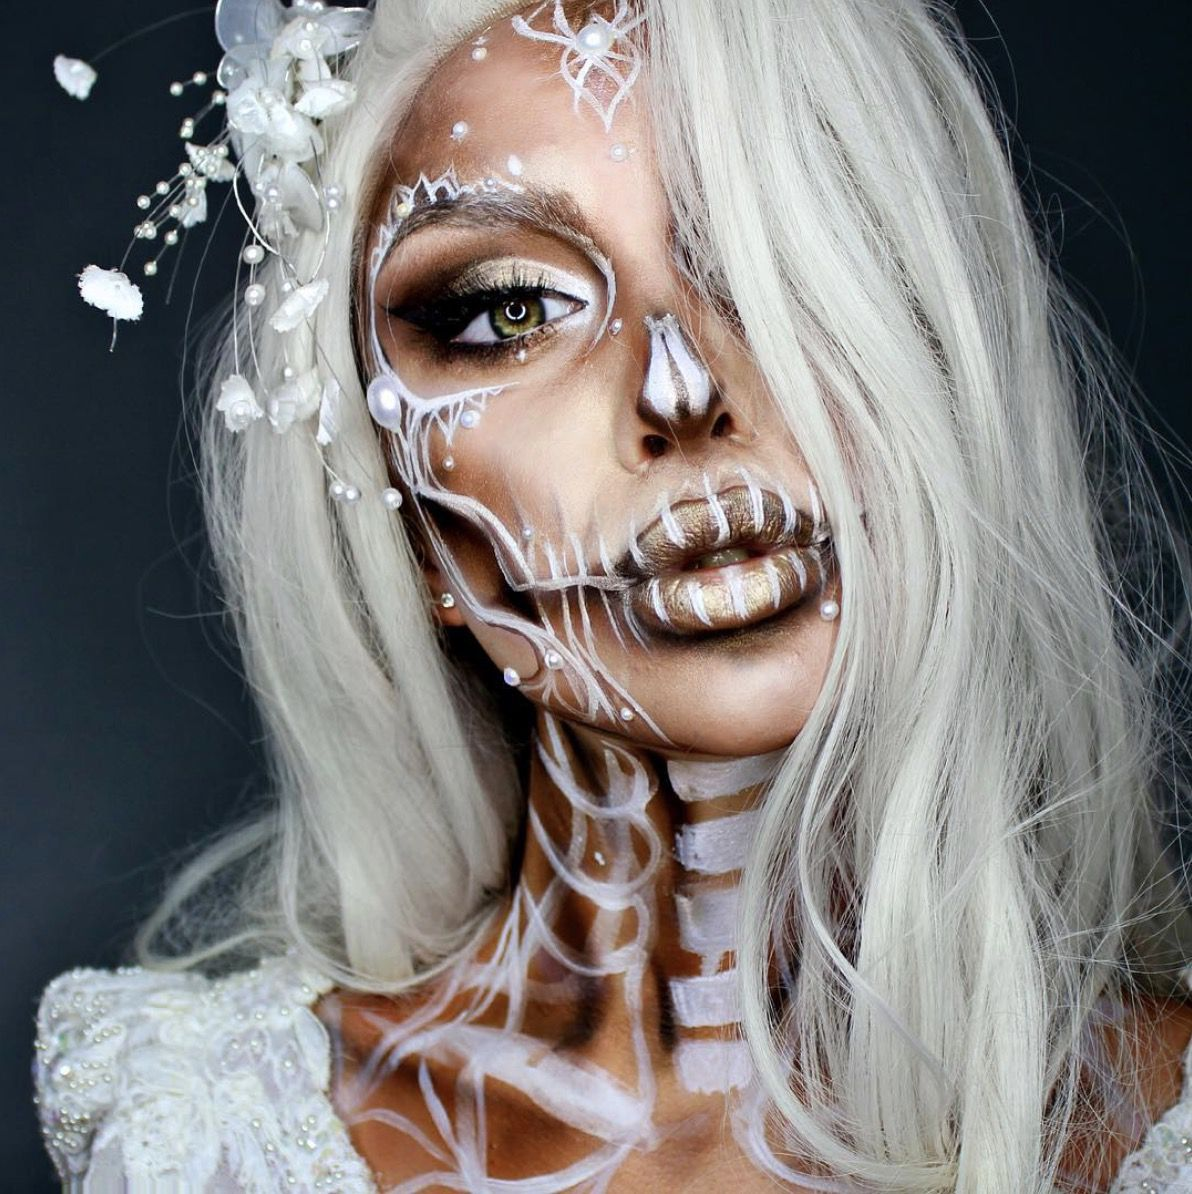 41 Most Jaw-Dropping Halloween Makeup Ideas That Are Still Pretty: The Dead Princess / Click though to see more awe inspiring pretty Halloween makeup looks, gorgeous Halloween makeup and Halloween costumes. #halloweenmakeup #halloweenmakeuppretty #halloweencostumes #halloweenmakeupinspo